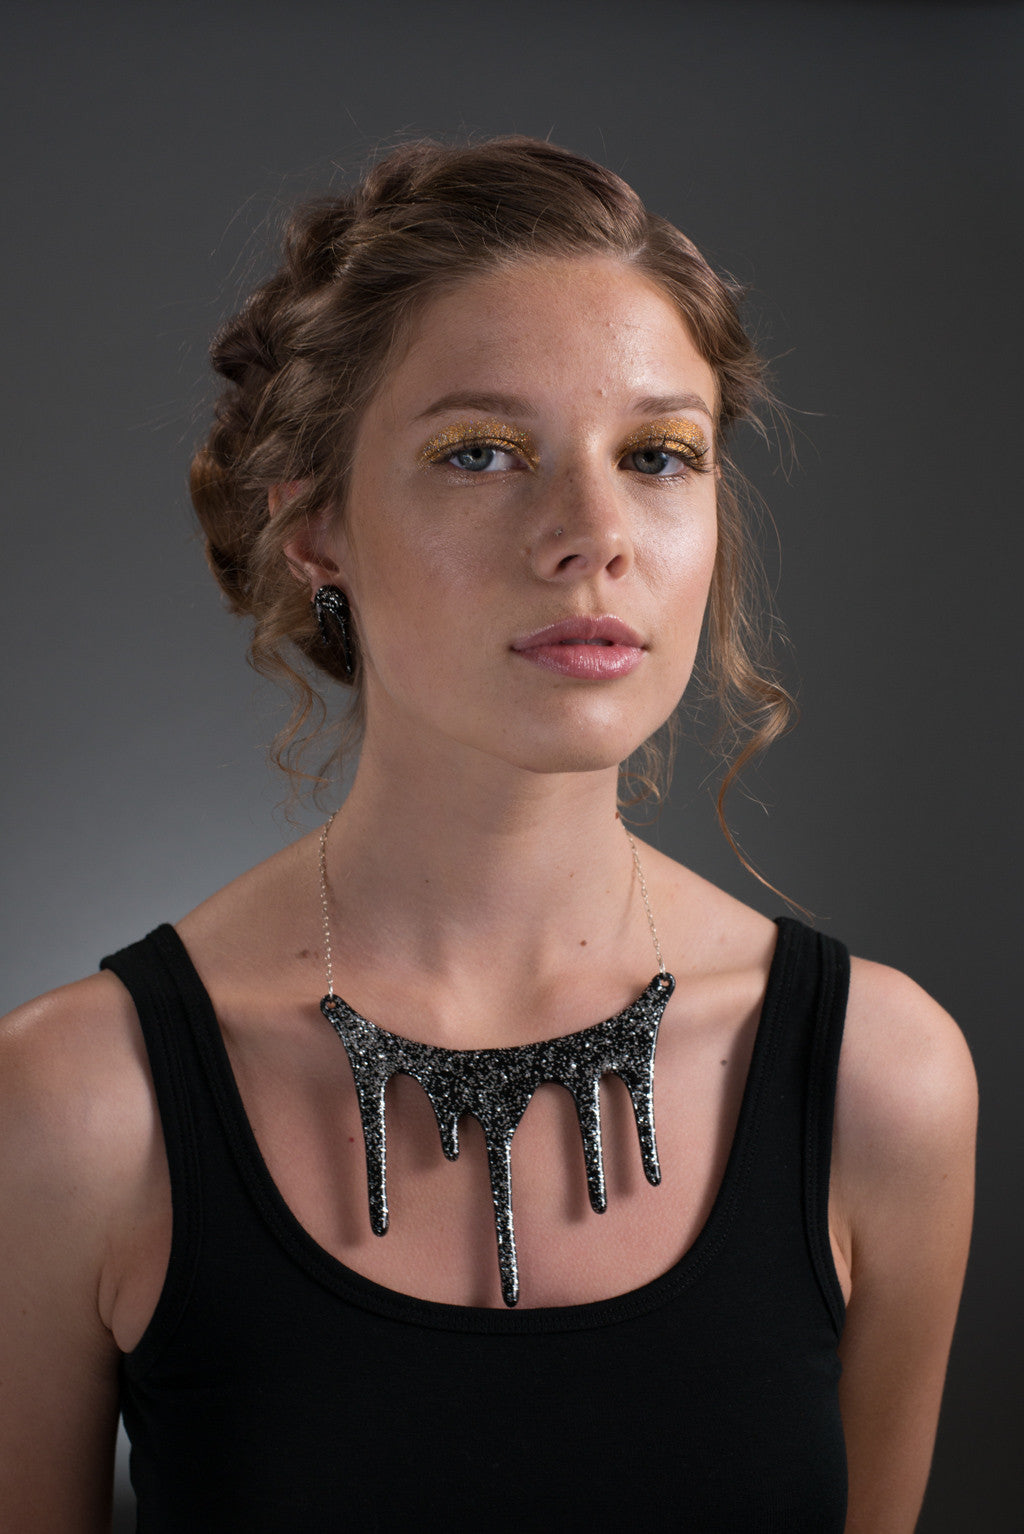 Sparkly Black Statement Necklace on model